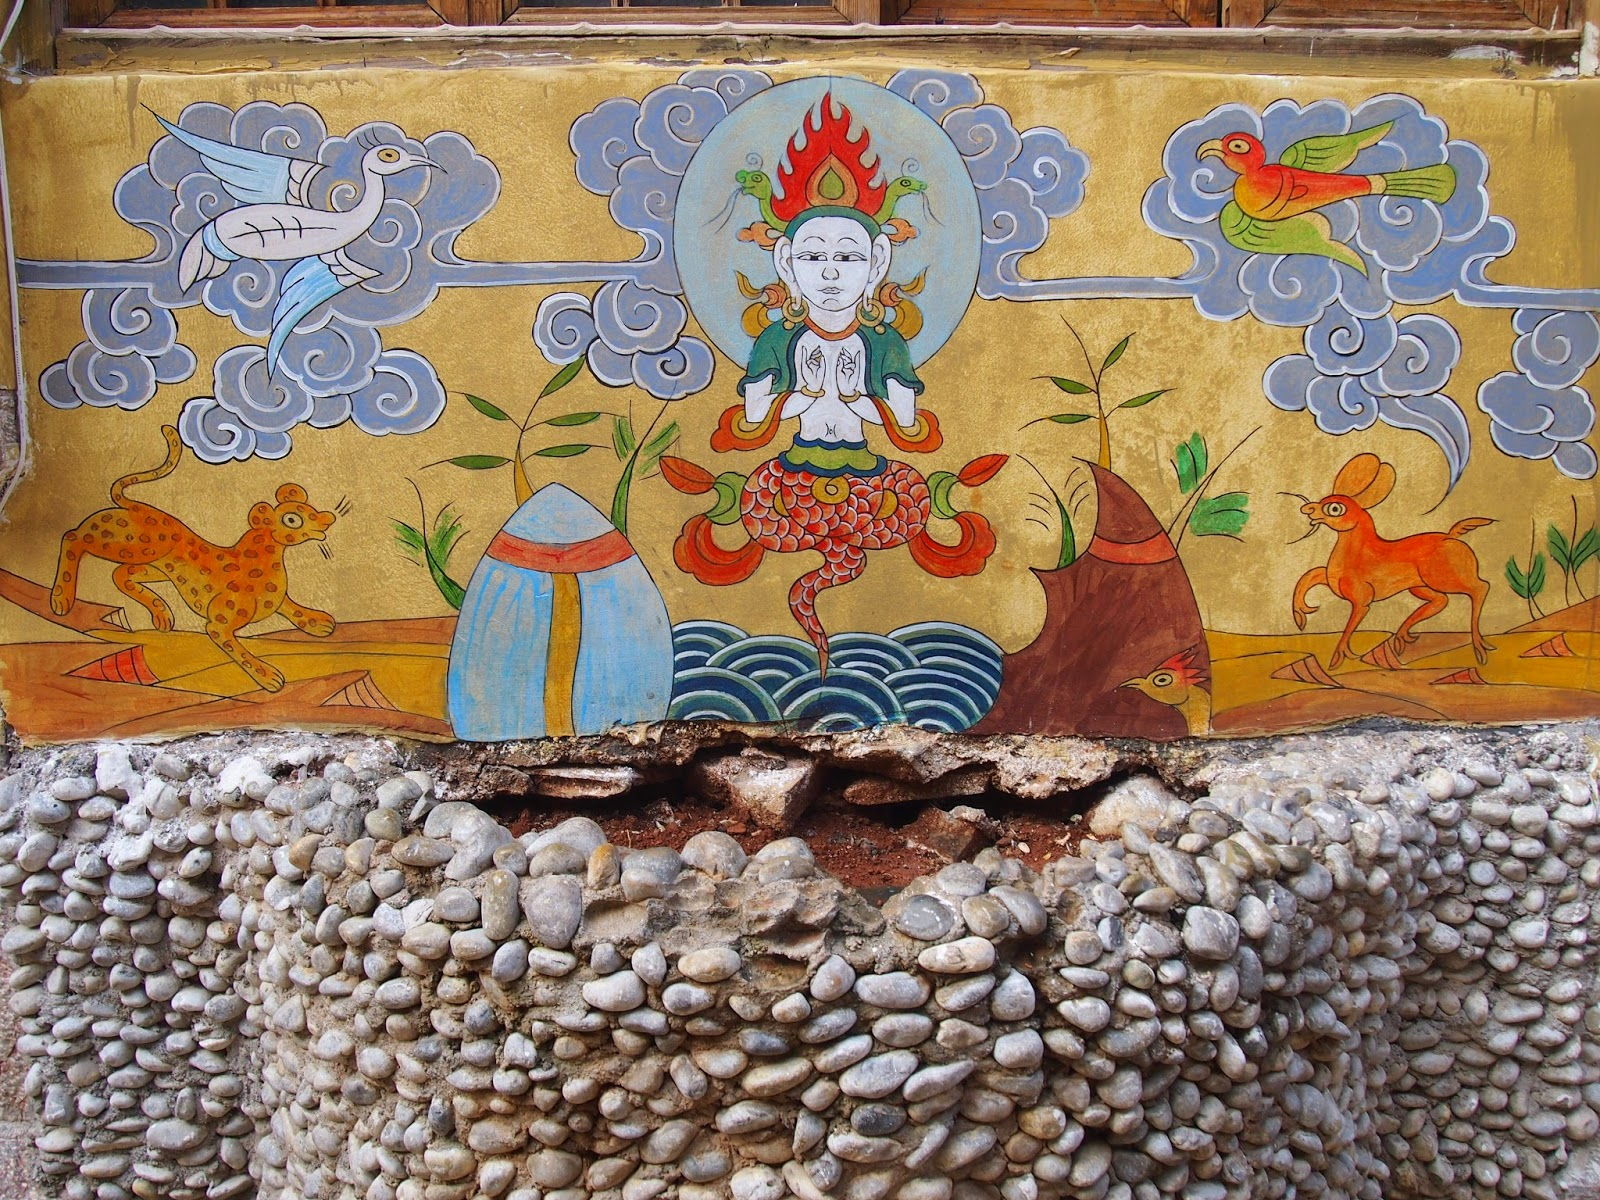 Dongba images in Lijiang Old Town